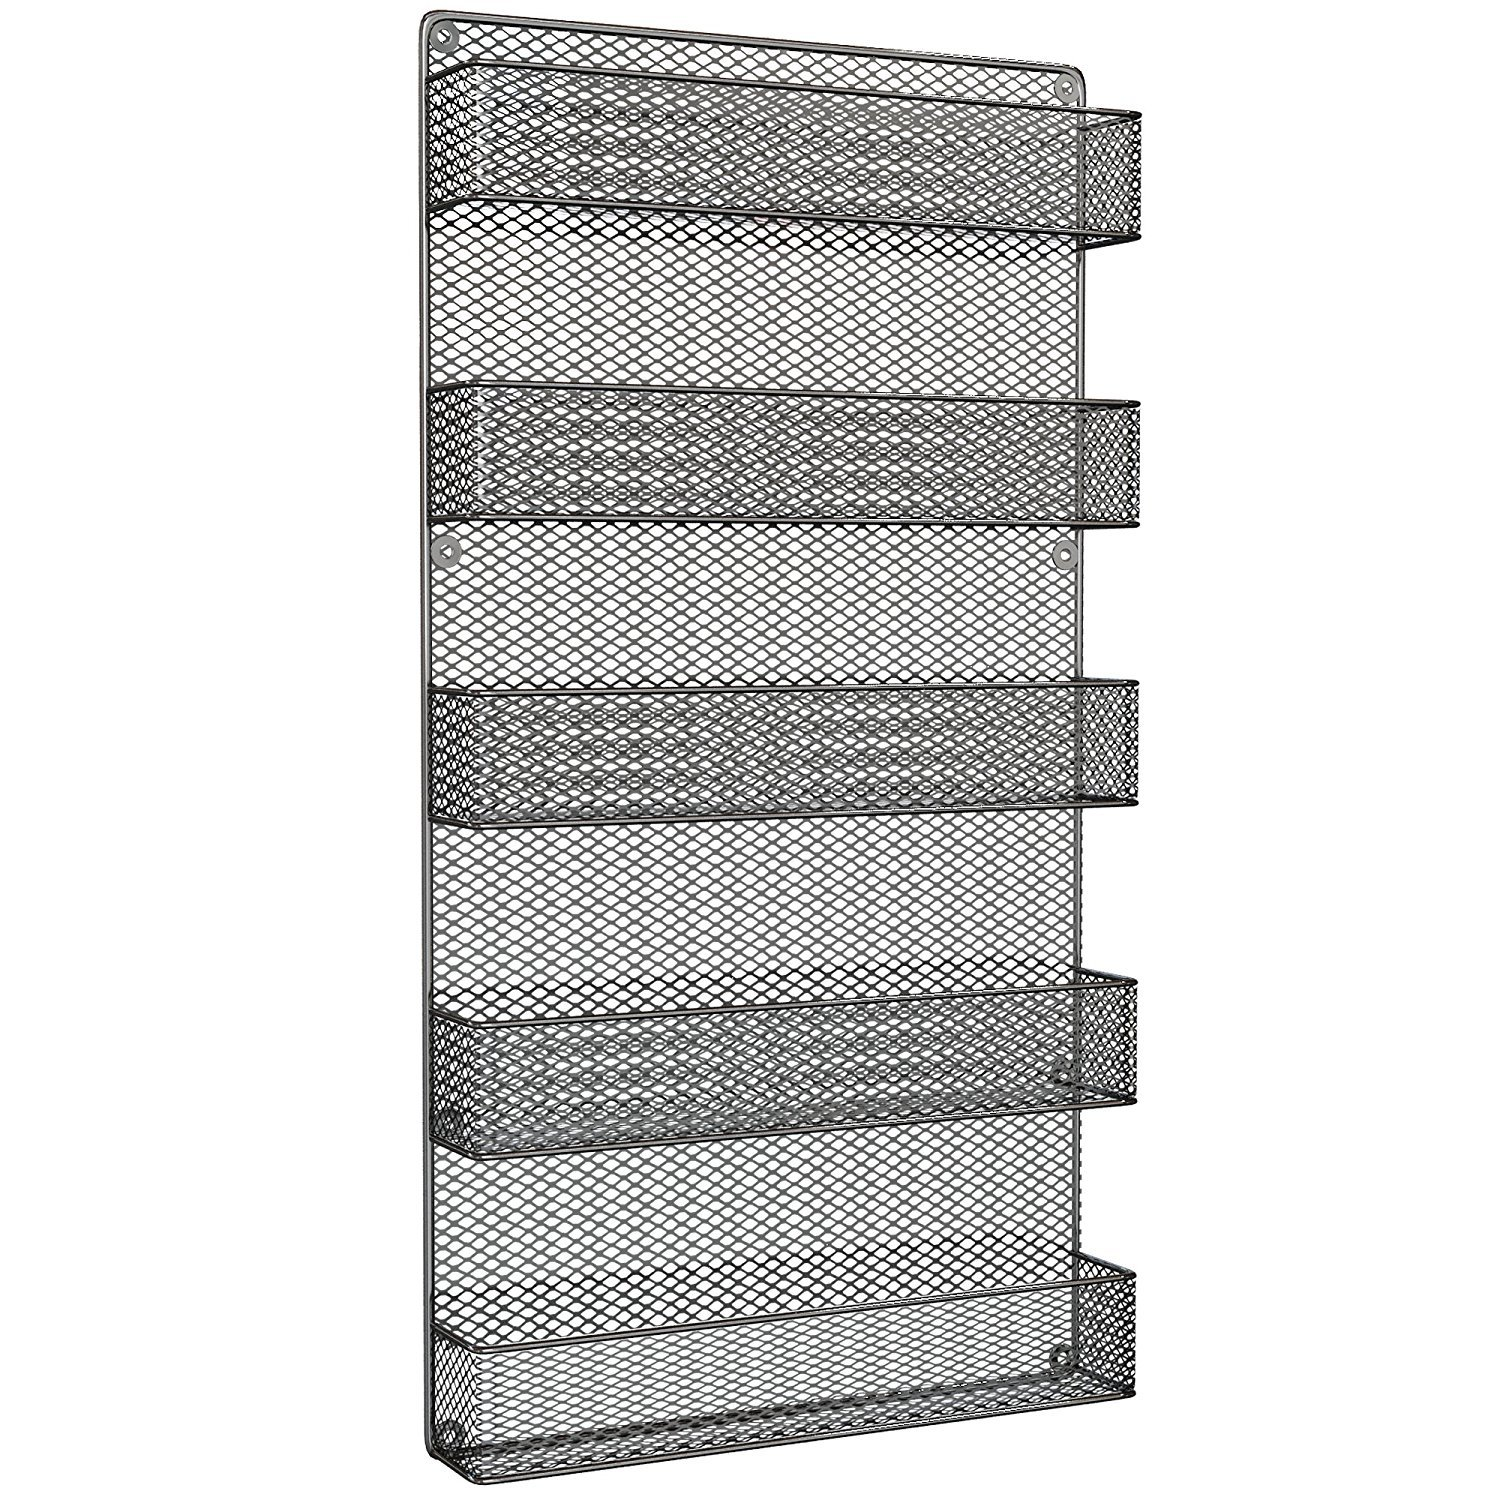 Spice Rack Organizer - Country Rustic Wire Style - Great Storage for Pantry, Cabinet and Kitchen - Wall Mounted 5 Tier Shelves